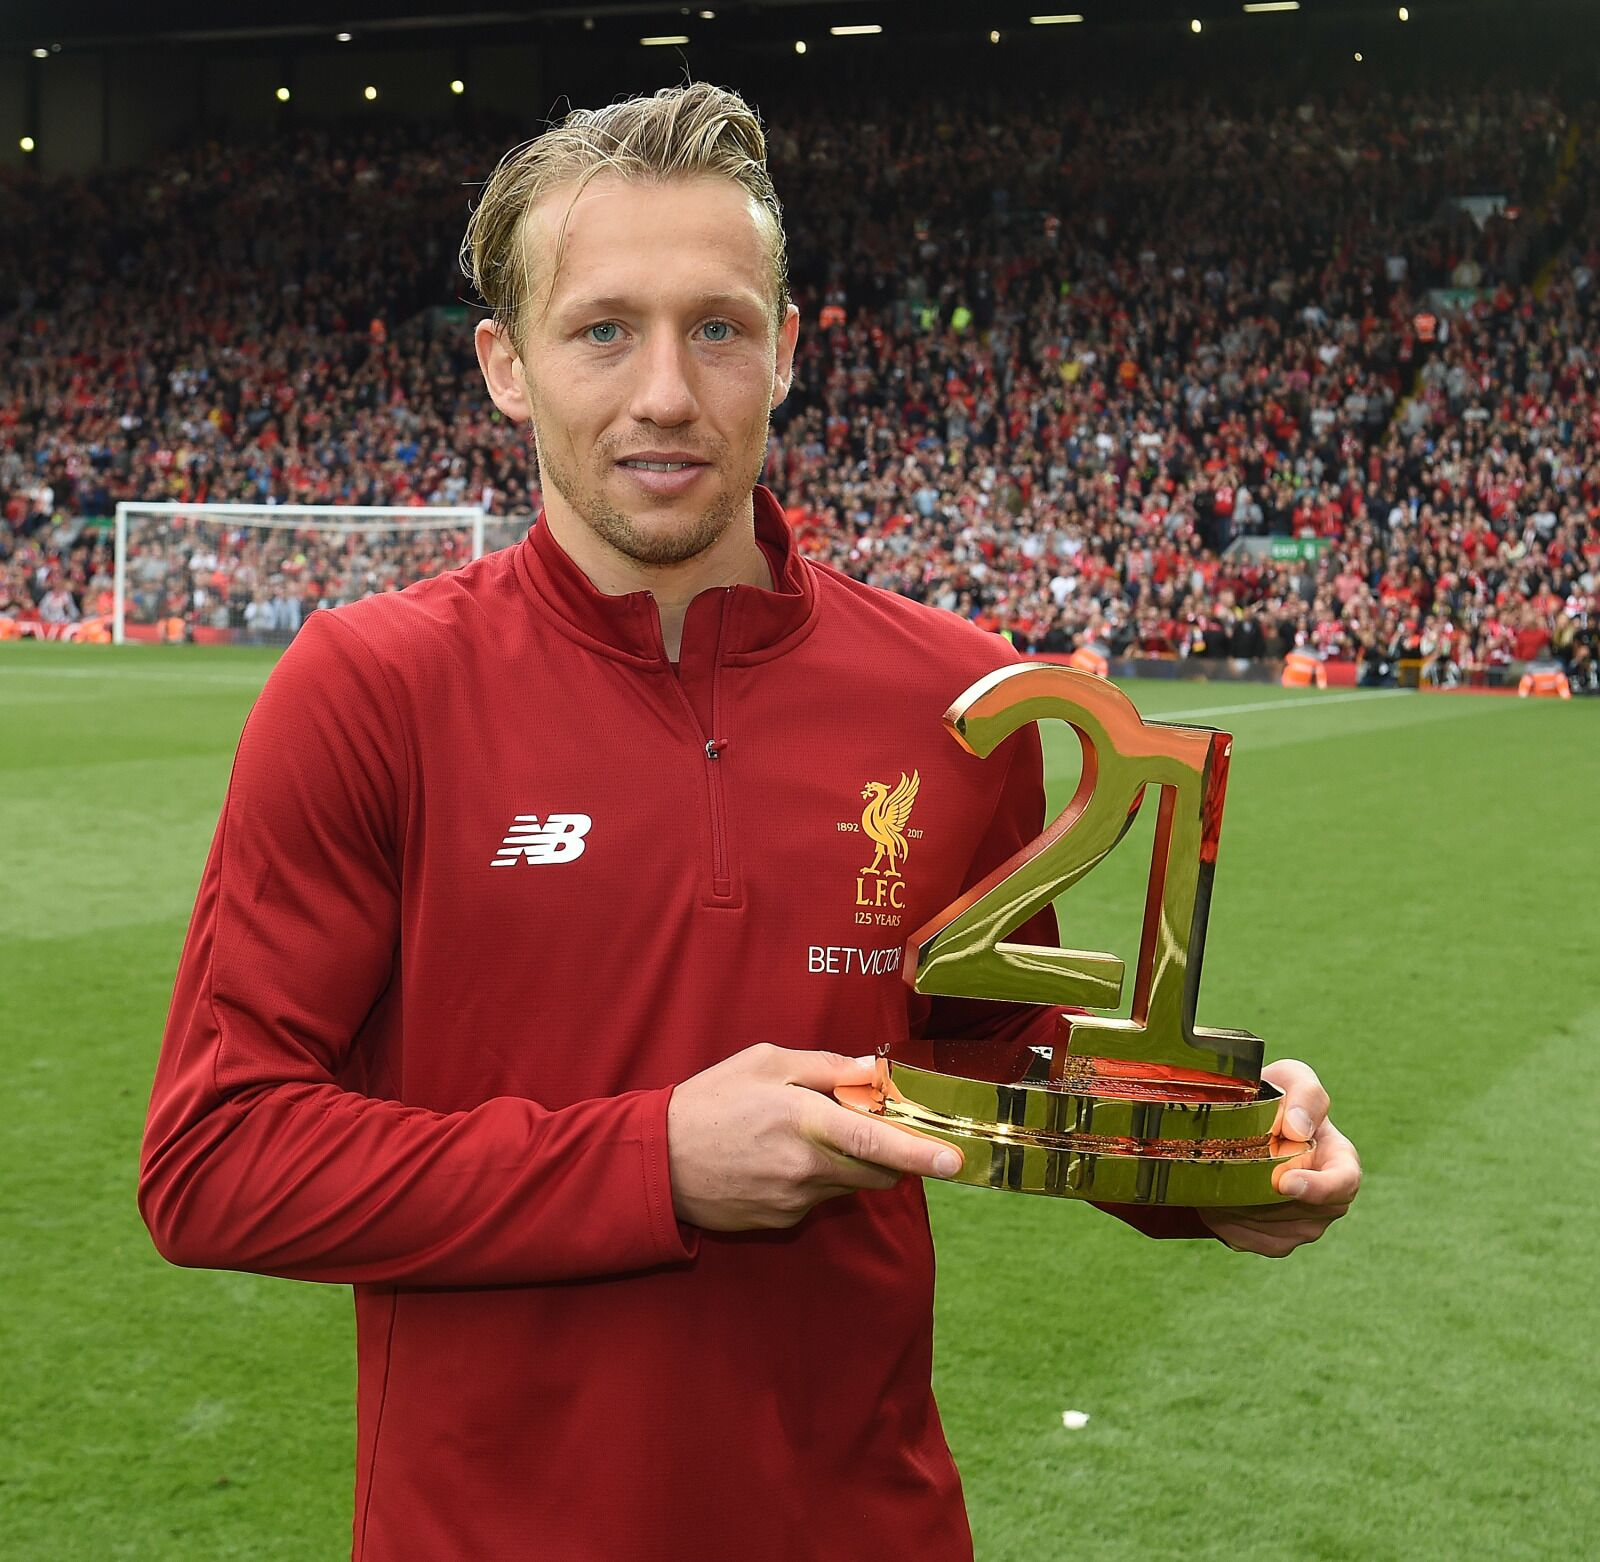 Liverpool fans help give Lucas Leiva Player of the Year